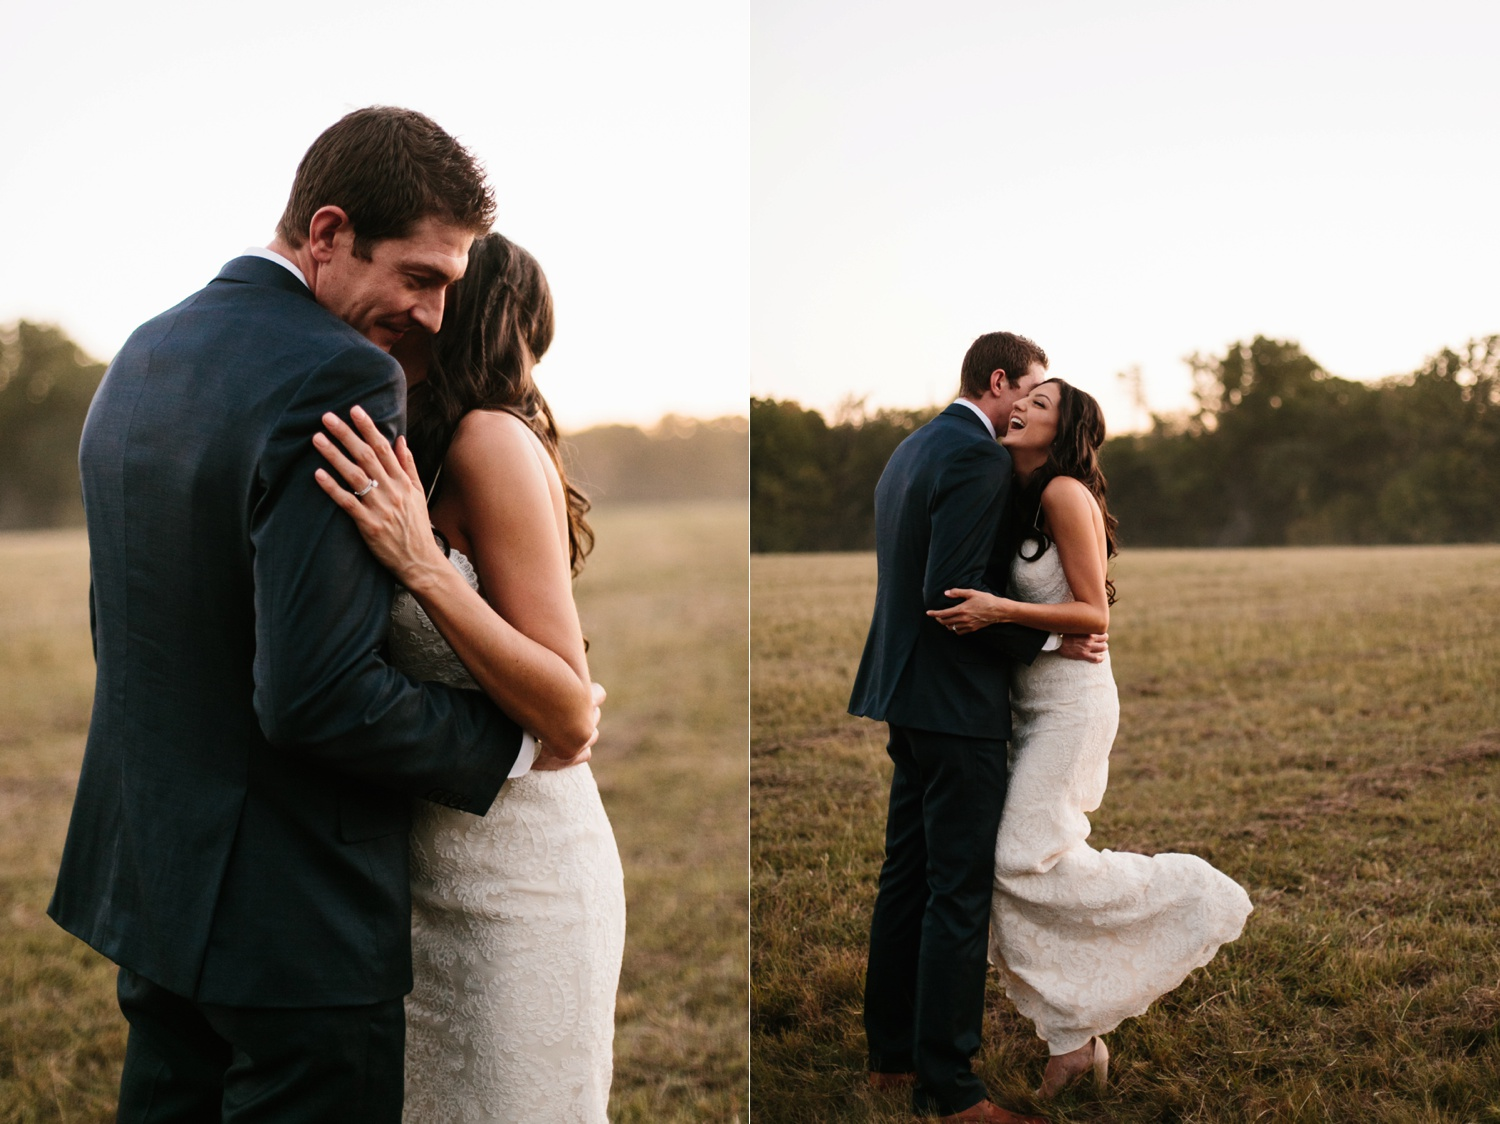 Erica + Henry | a bohemian inspired wedding at Chandlers Gardens in Salina, TX by North Texas Wedding Photographer Rachel Meagan Photography 120